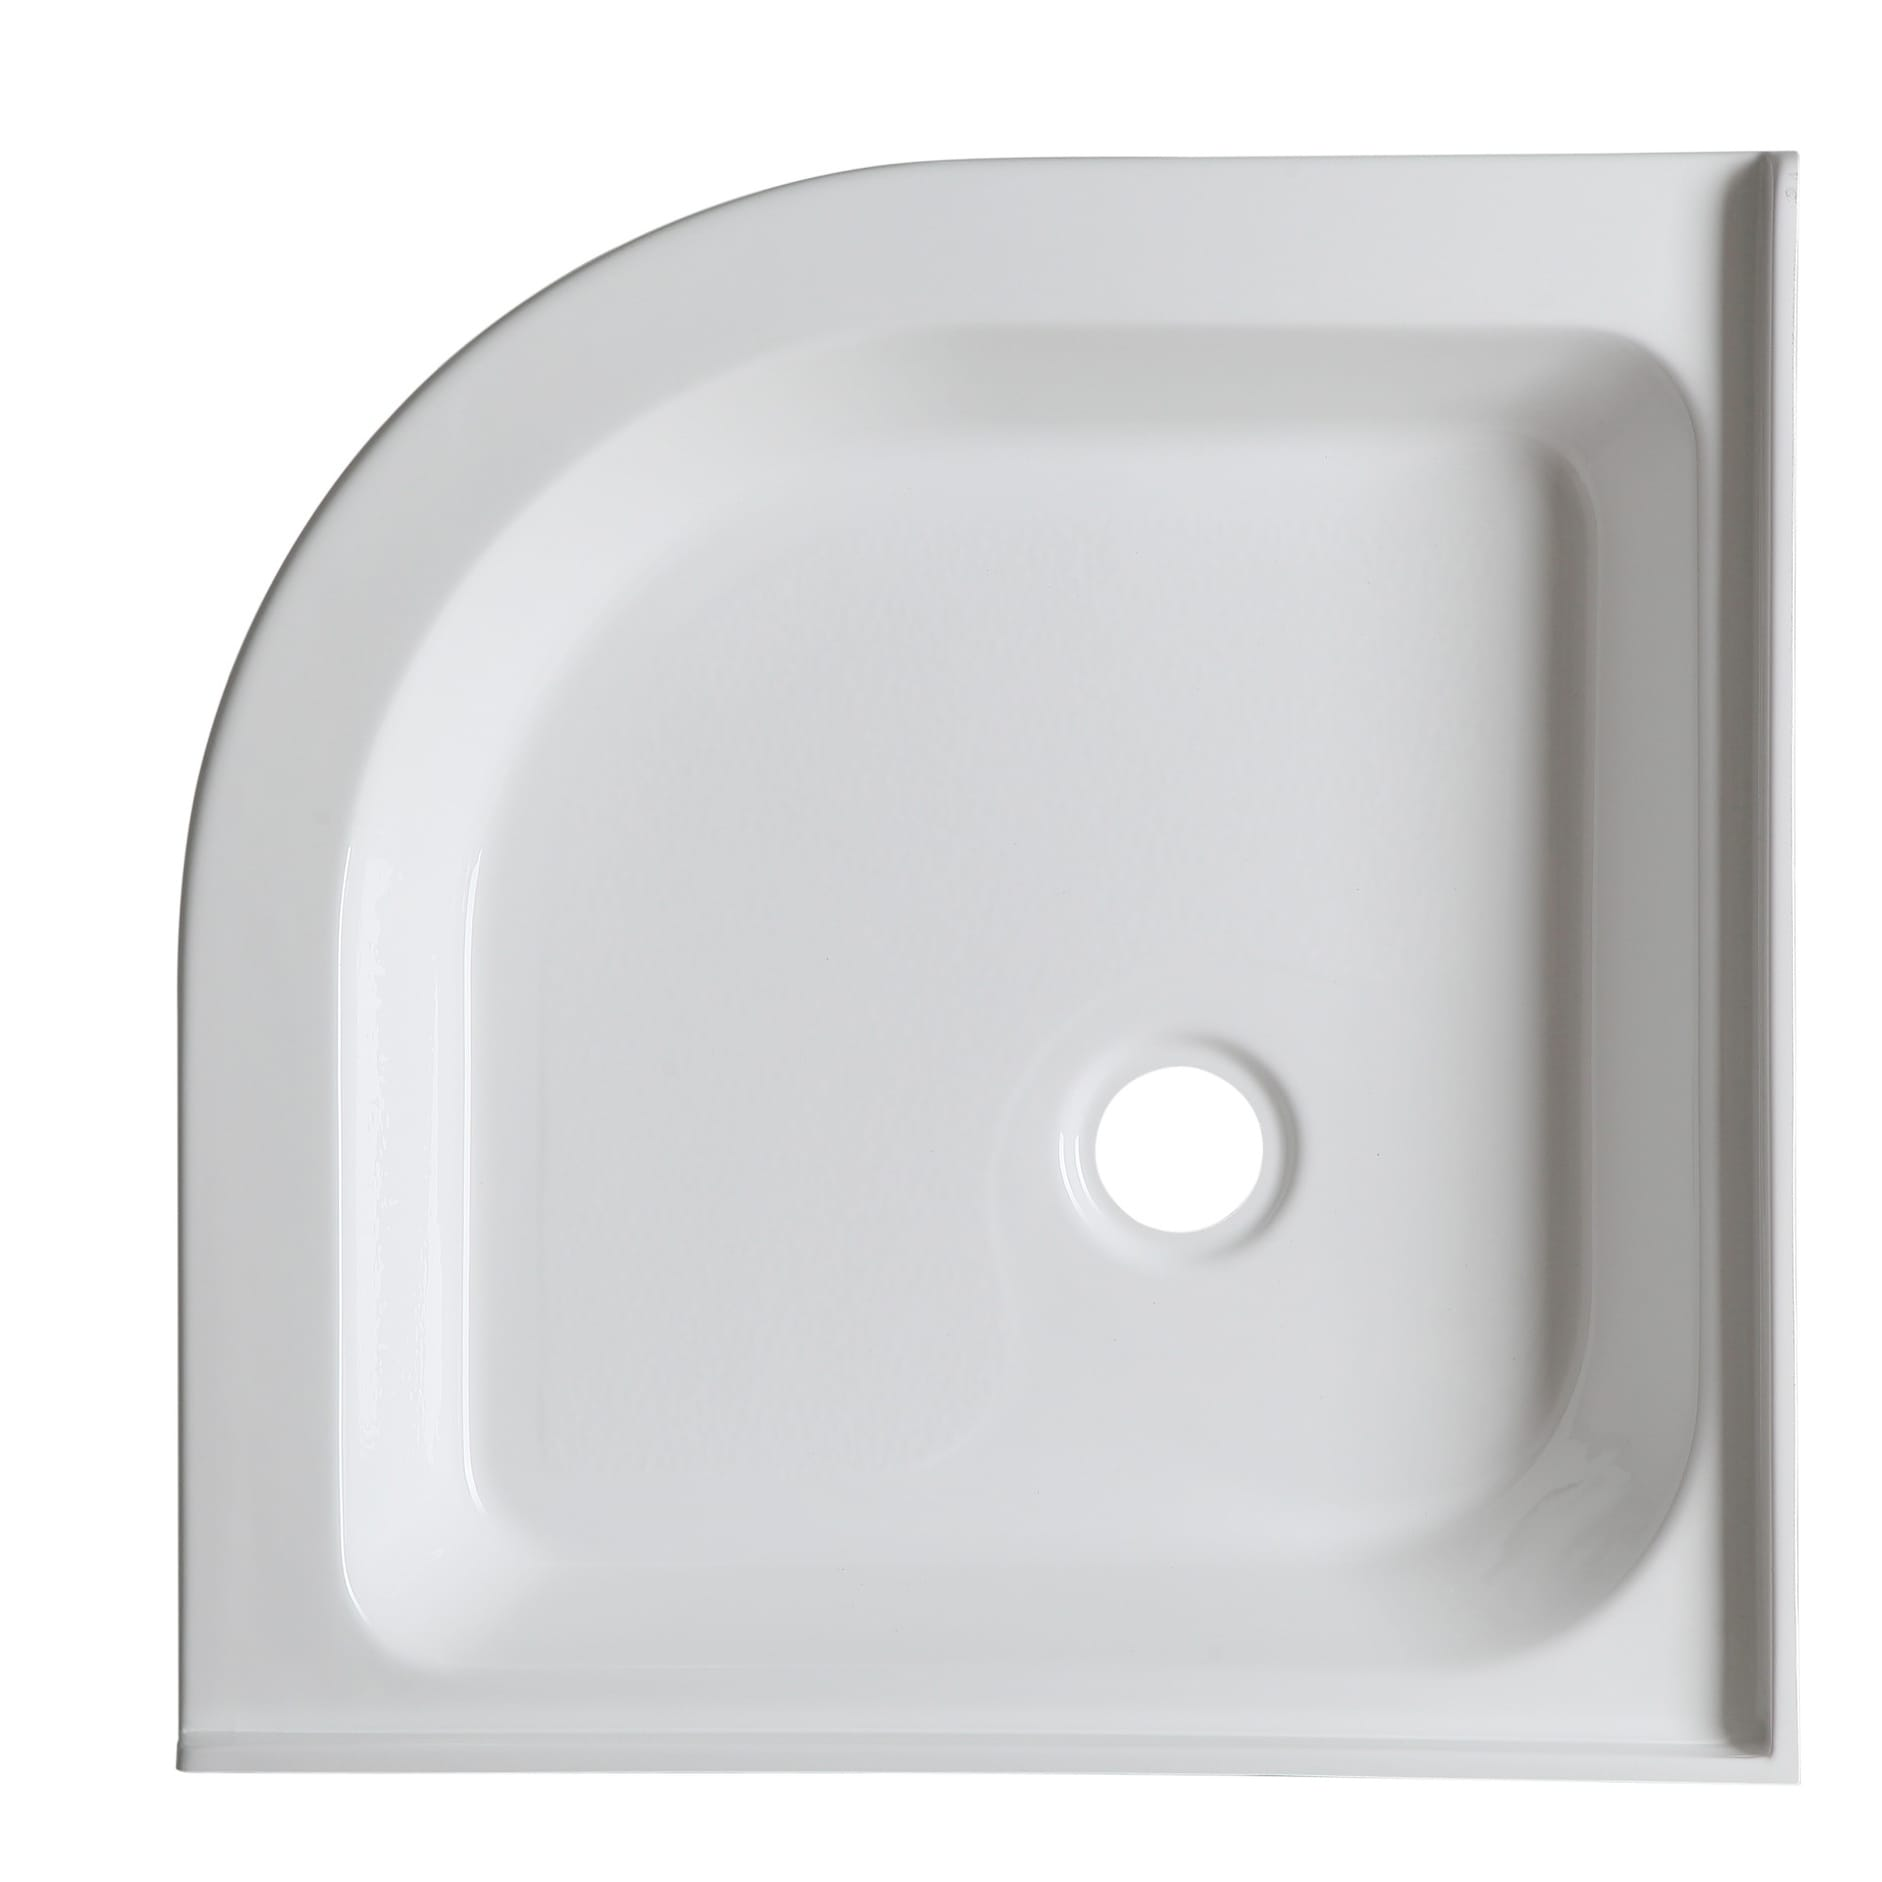 Superieur Neo Round Double Threshold Shower Base In White   Free Shipping Today    Overstock.com   17630064